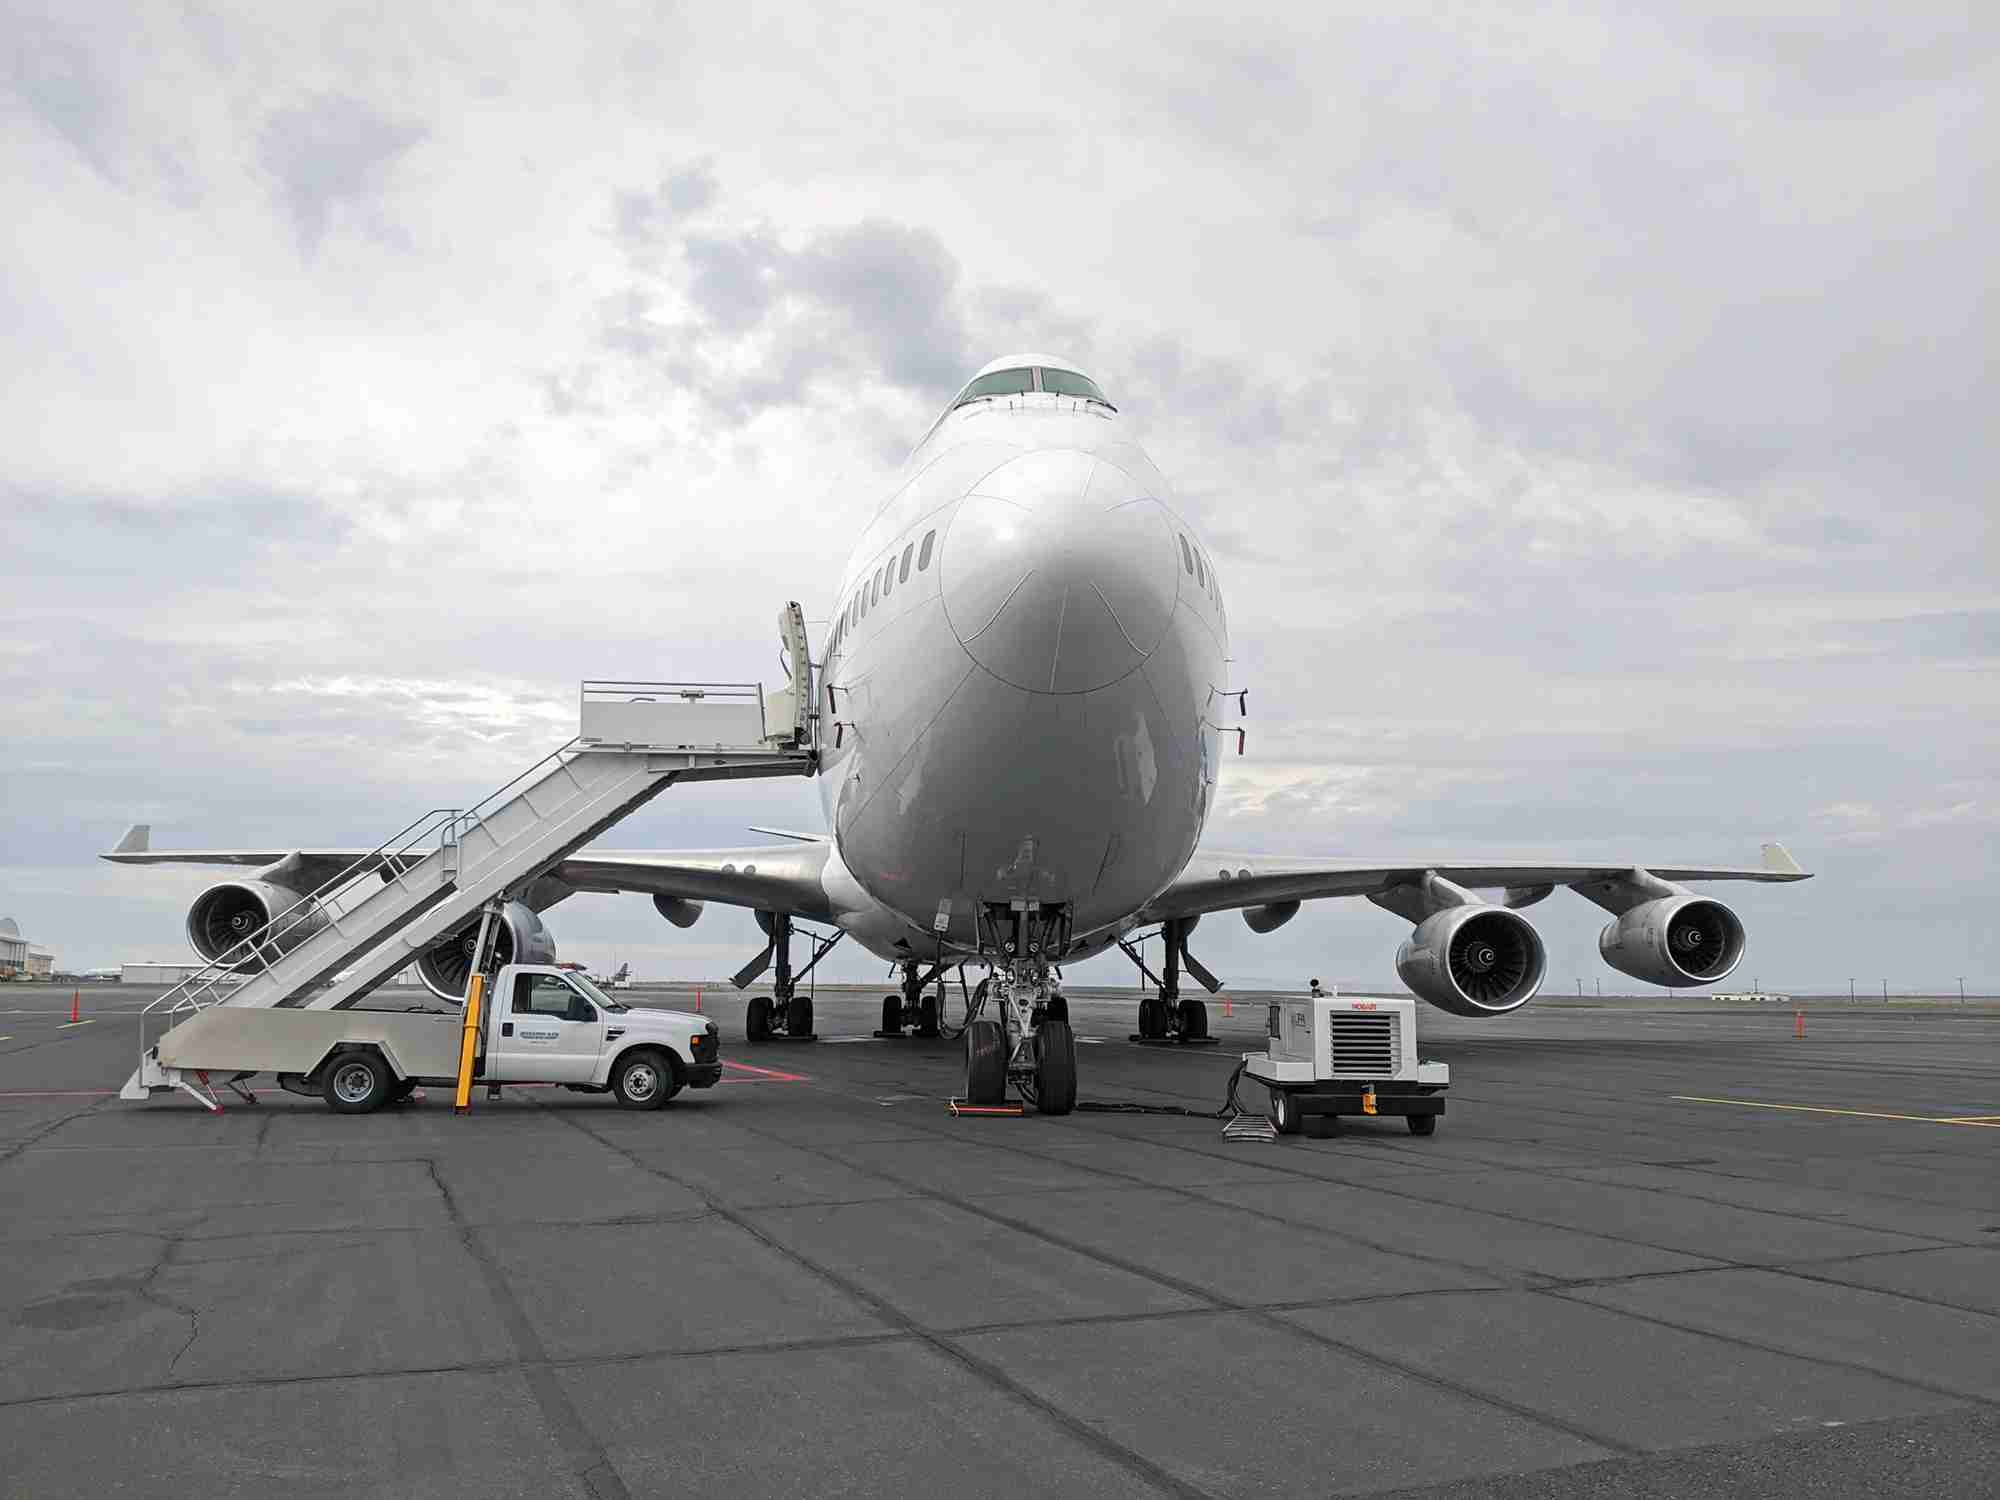 Airstairs and a ground-power unit with a Boeing 747 (Photo by Alberto Riva/TPG)